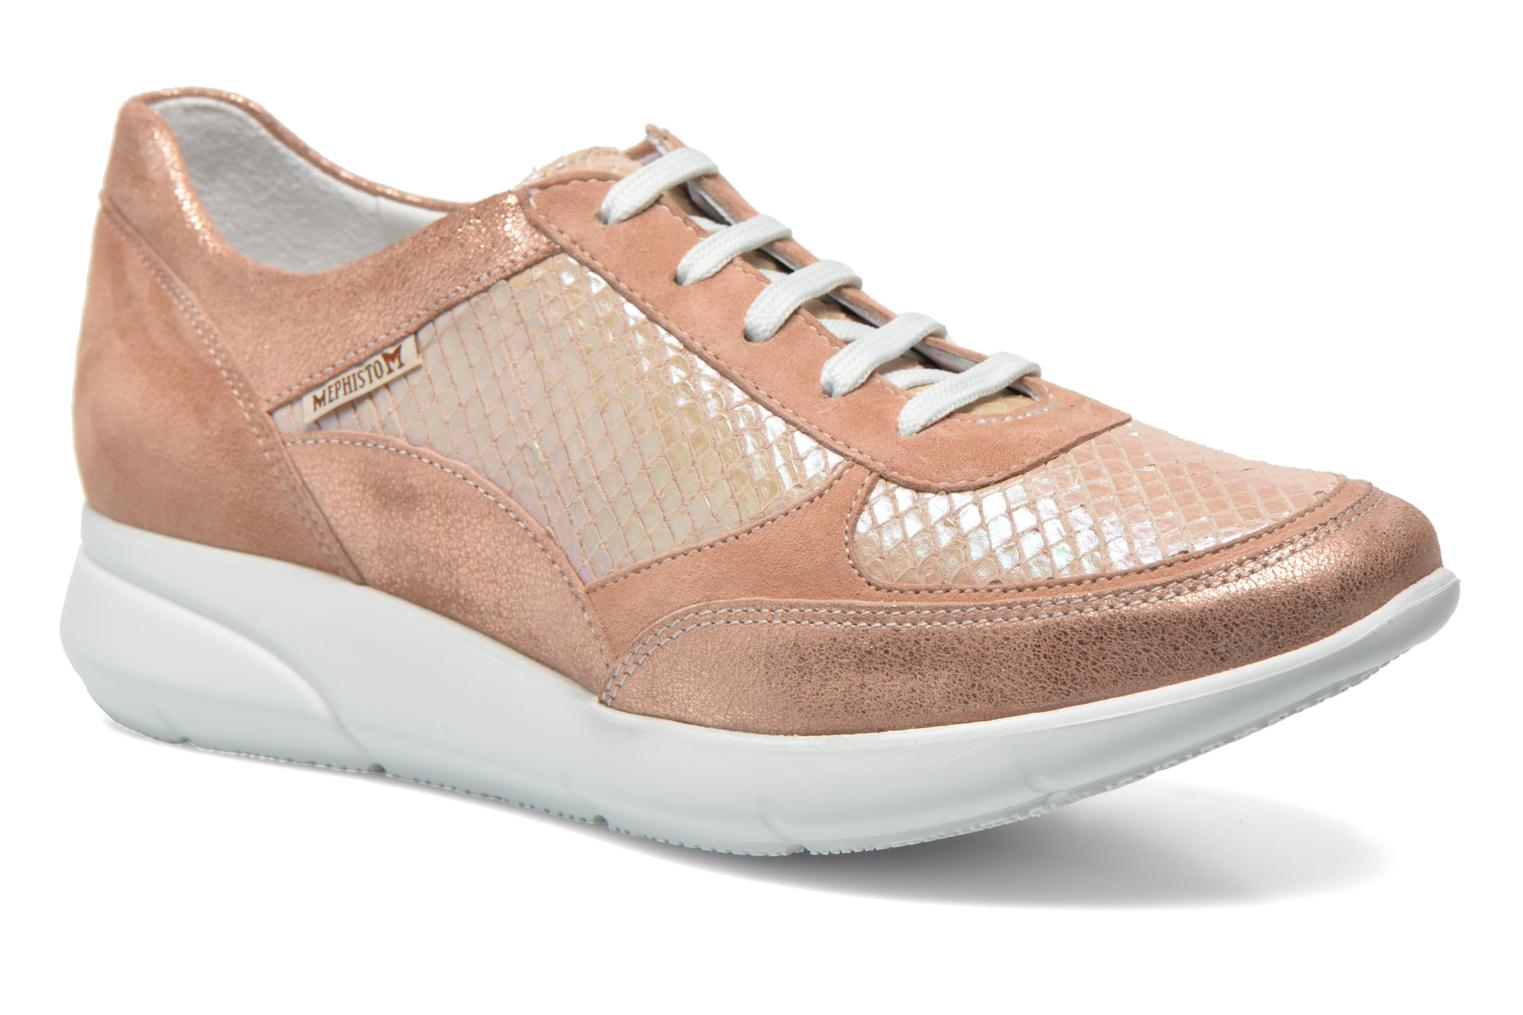 Marques Chaussure femme Mephisto femme DIANE Nude